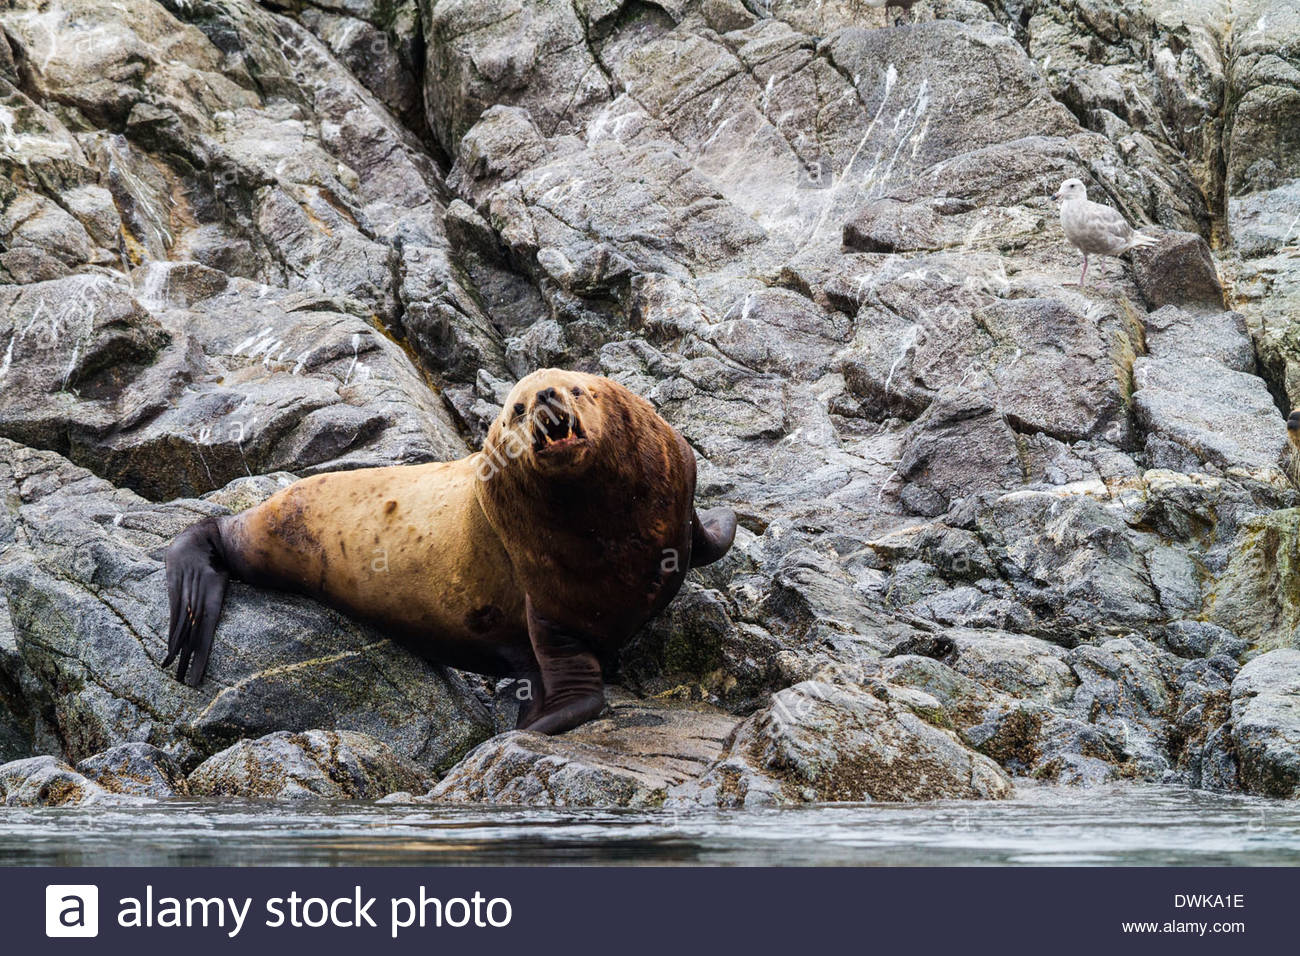 An angry looking stellar sea lion bull bares its teeth to passersby on a rocky shore, Alaska, USA - Stock Image